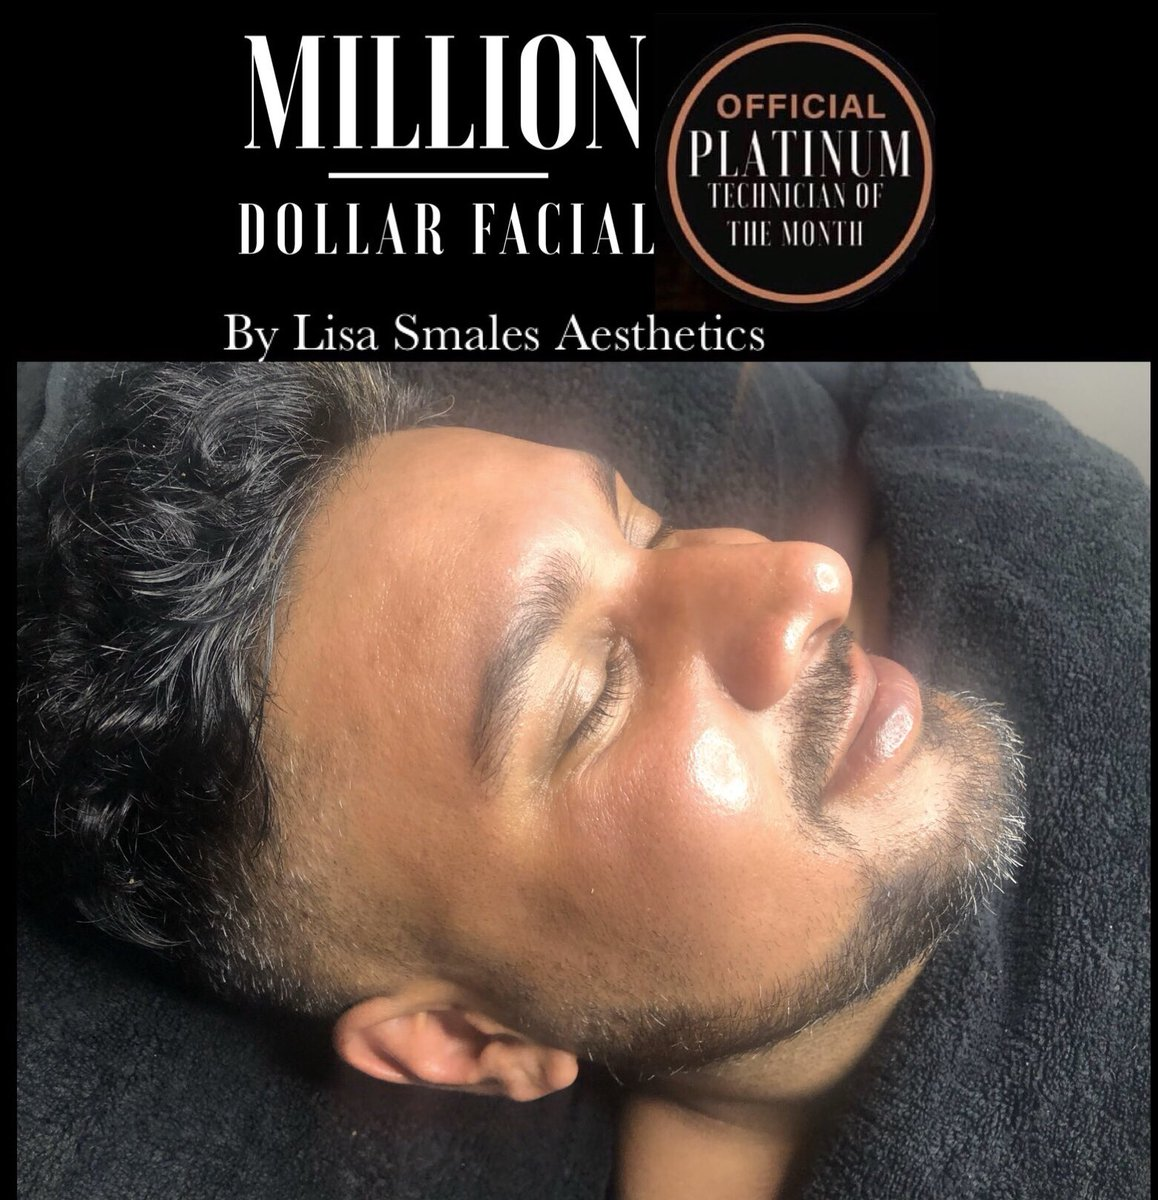 What an absolute pleasure it was to treat this gorgeous human being ! @ik.collections  Luxury Tailoring  Tailoring to the celebrities   Thank you for choosing me to do your Million Dollar Facial   https://ikcollection.co.uk/   Milliondollarfacials #milliondollarfacialpic.twitter.com/3DRA8goH7V